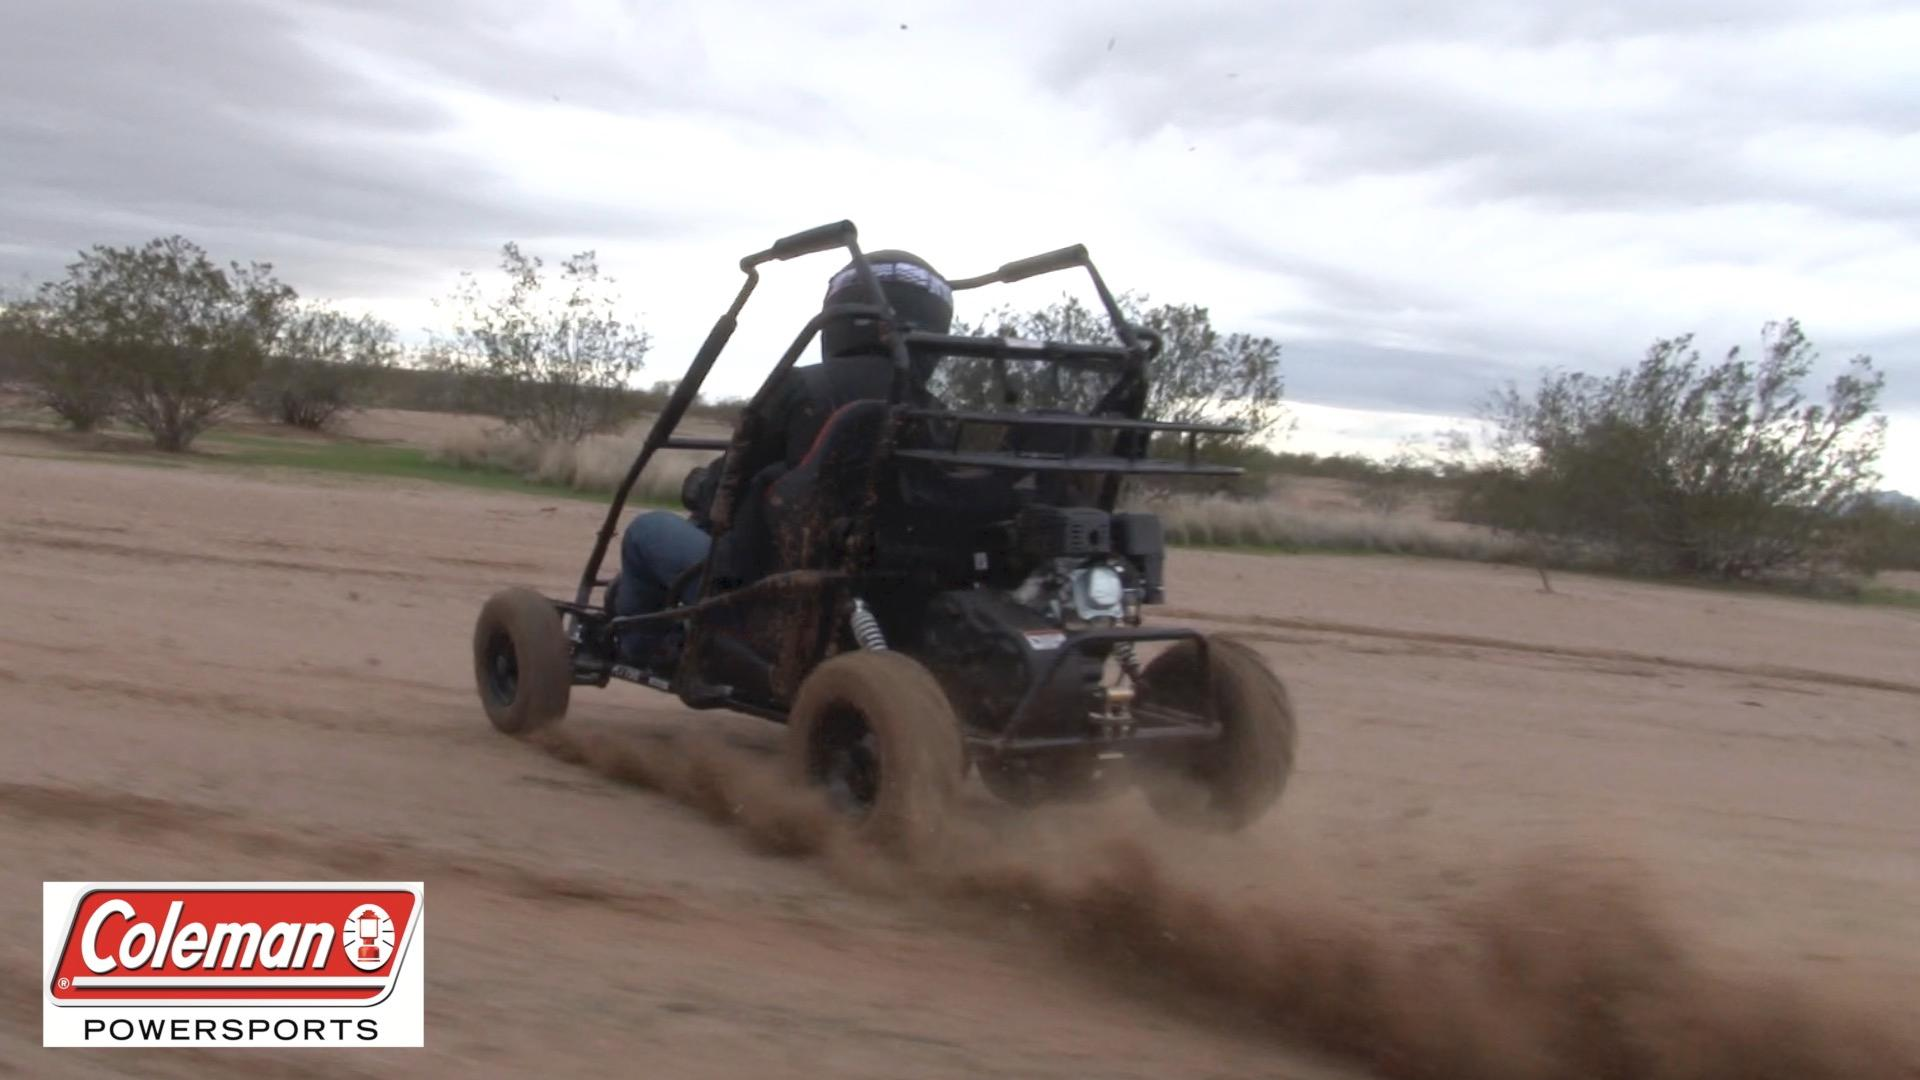 Powered Off Road Go Kart Coleman Powersports Kt196 Gas 2